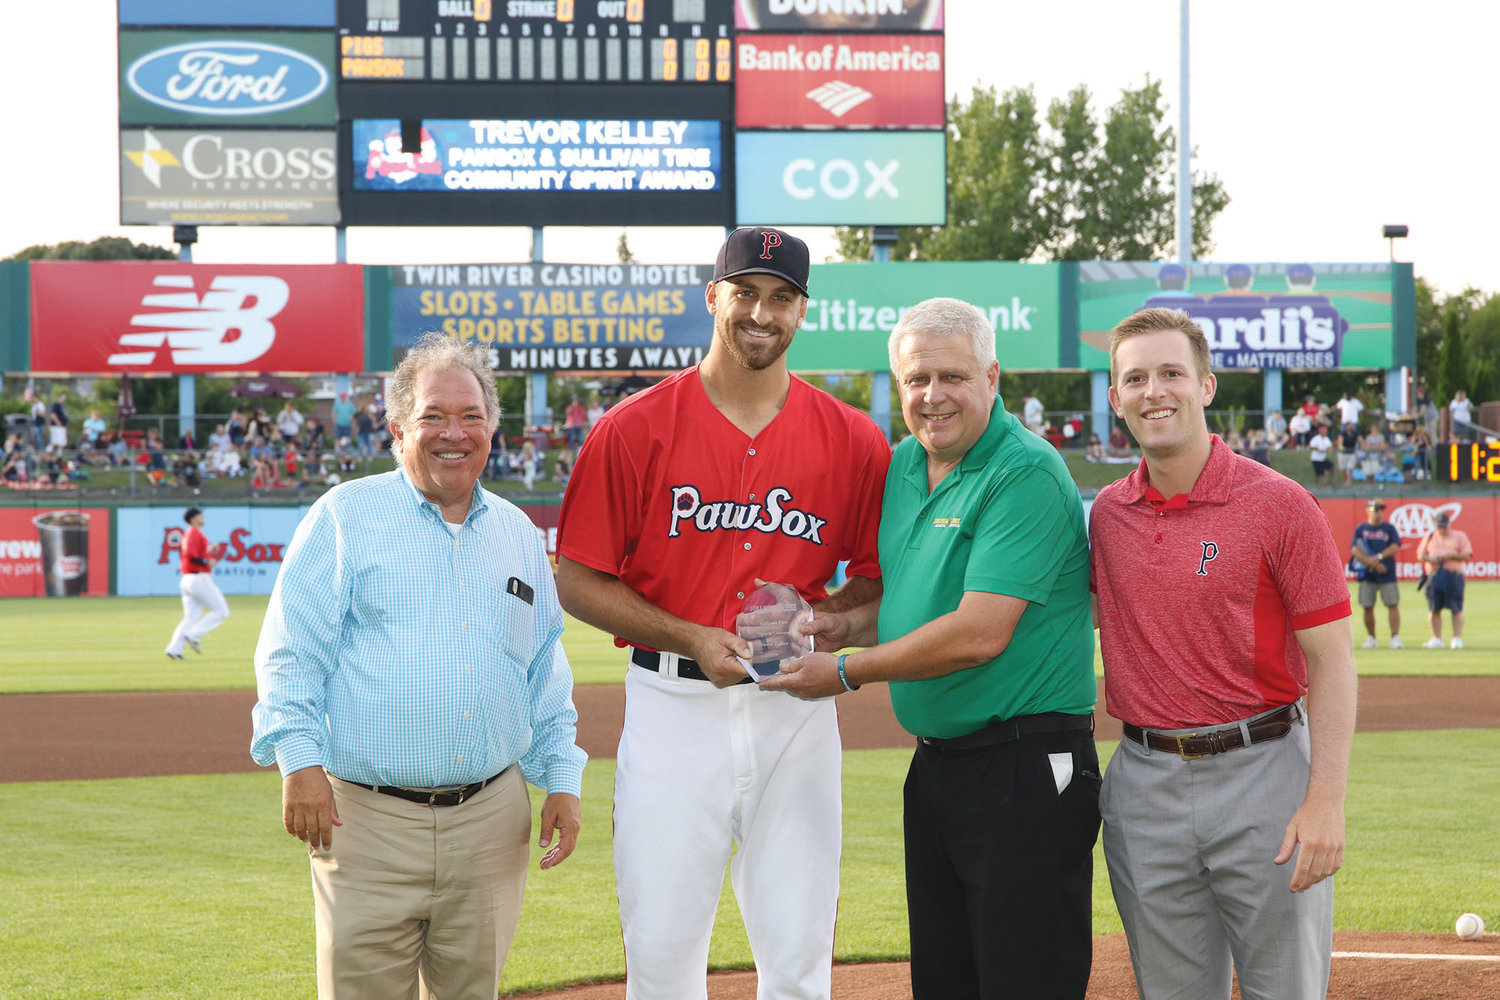 Barrington native and current PawSox pitcher Trevor Kelley recently received the Sullivan Tire PawSox Community Spirit Award.